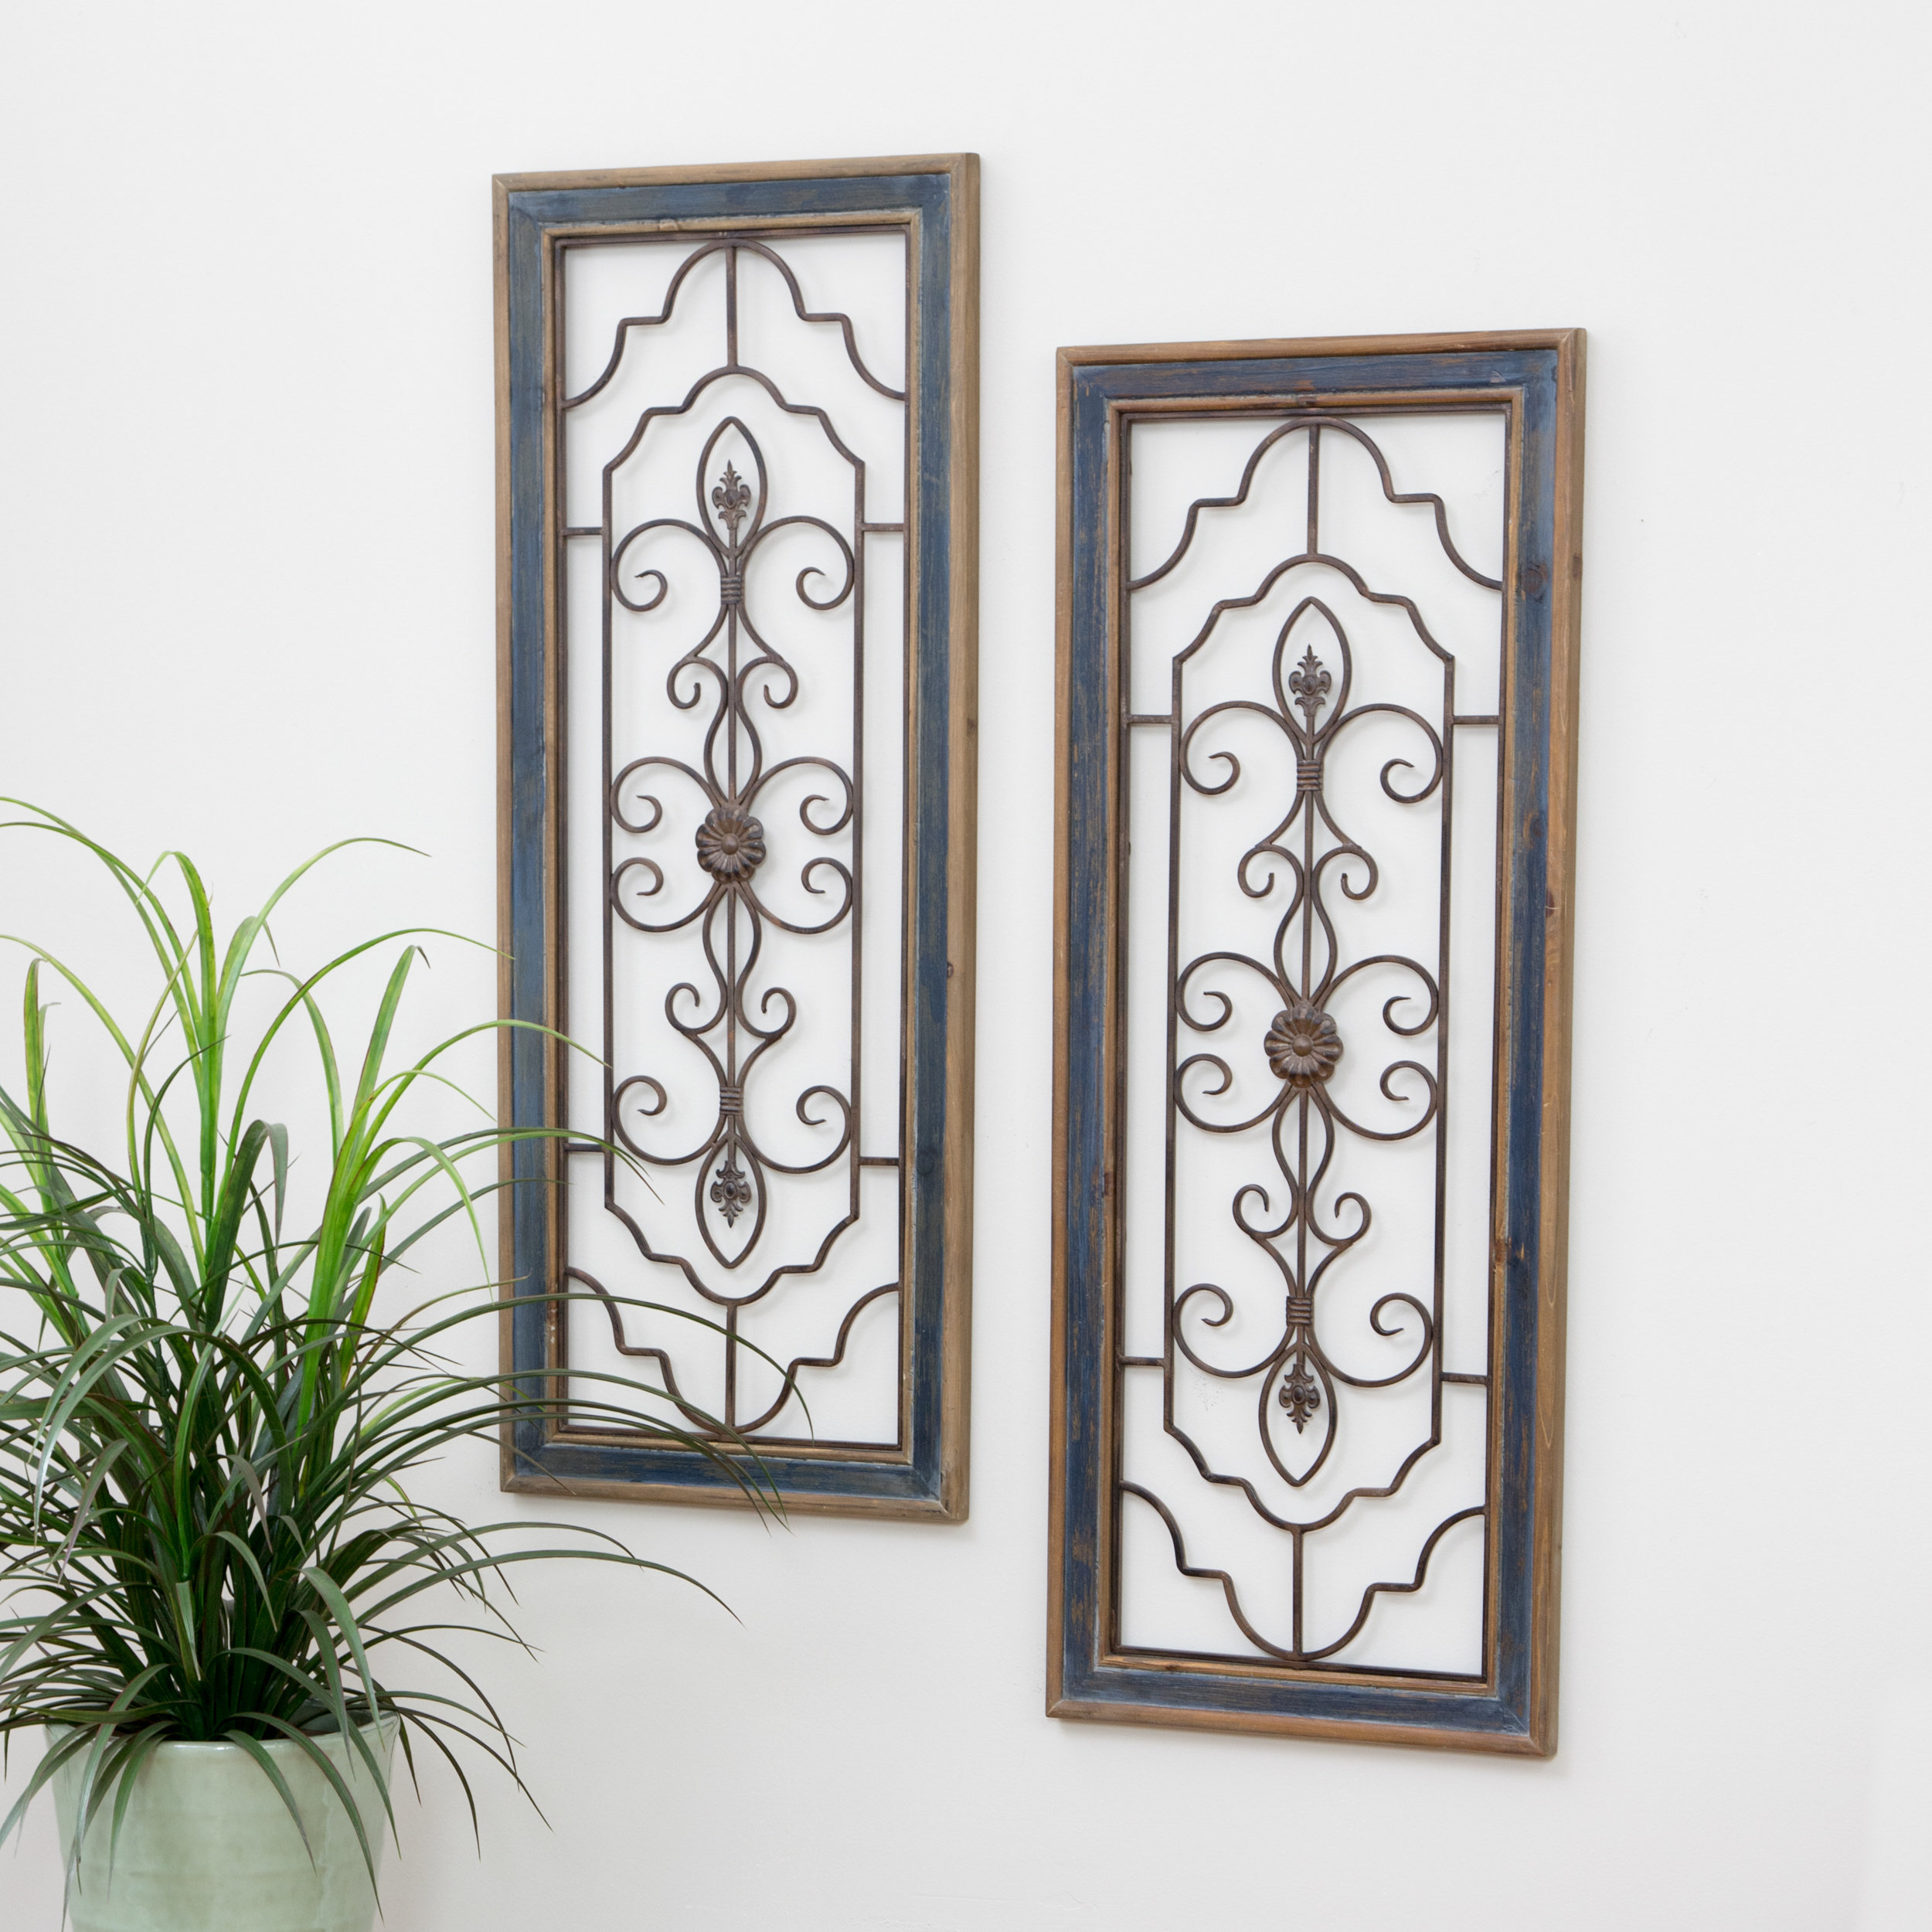 2 Piece Wall Decor Set | Wayfair with regard to 2 Piece Starburst Wall Decor Sets (Image 9 of 30)